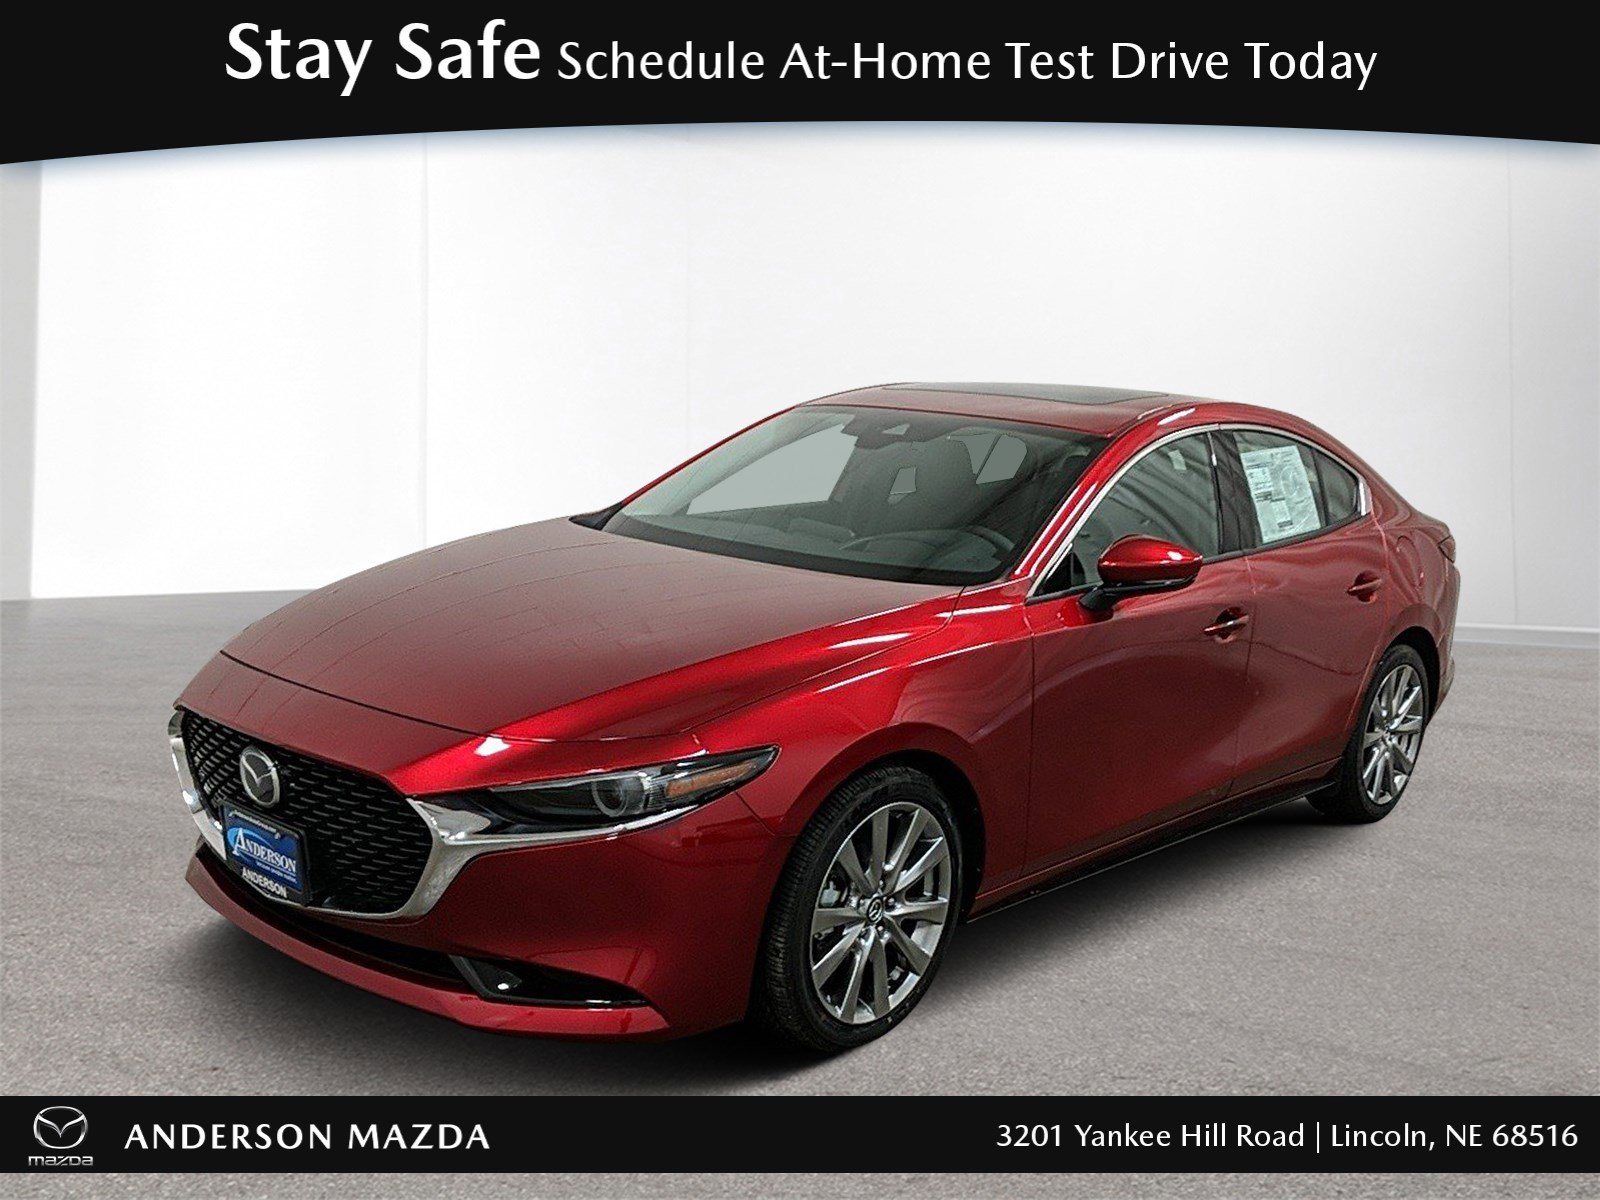 New 2020 Mazda Mazda3 Sedan w/Premium Pkg 4dr Car for sale in Lincoln NE